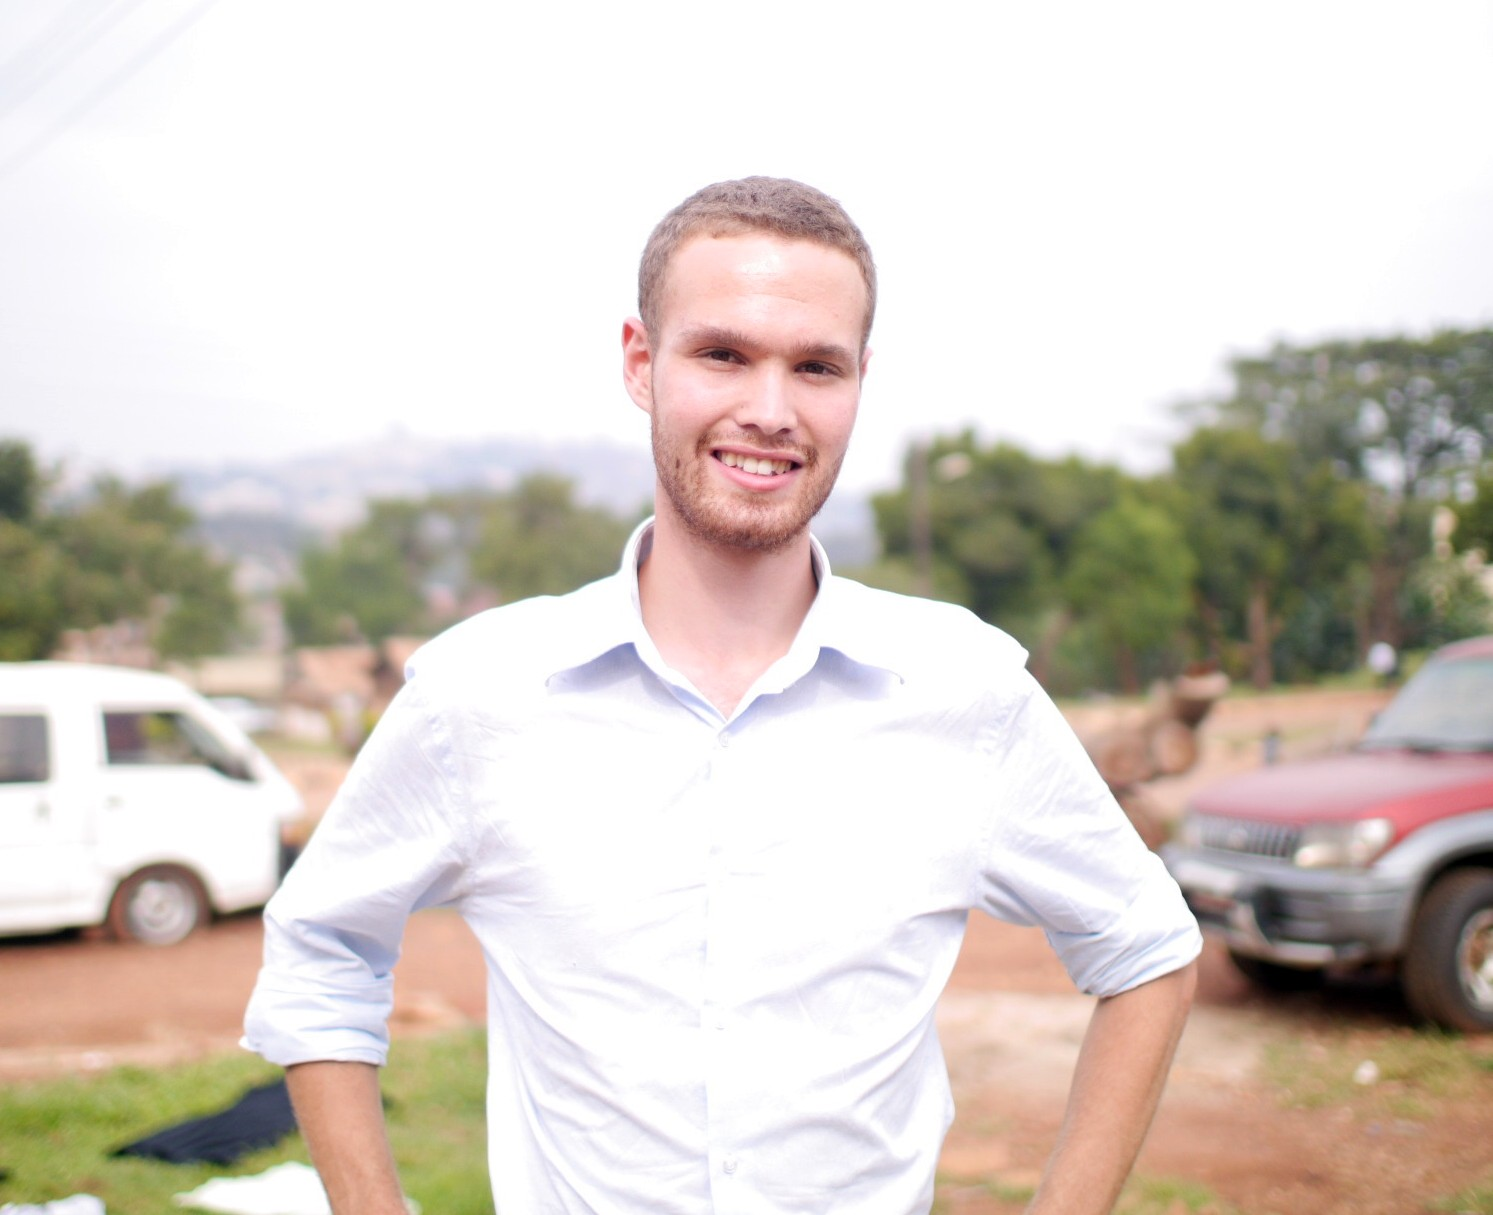 Leo Henghes from the UK is the Young Person of the Month for September 2014